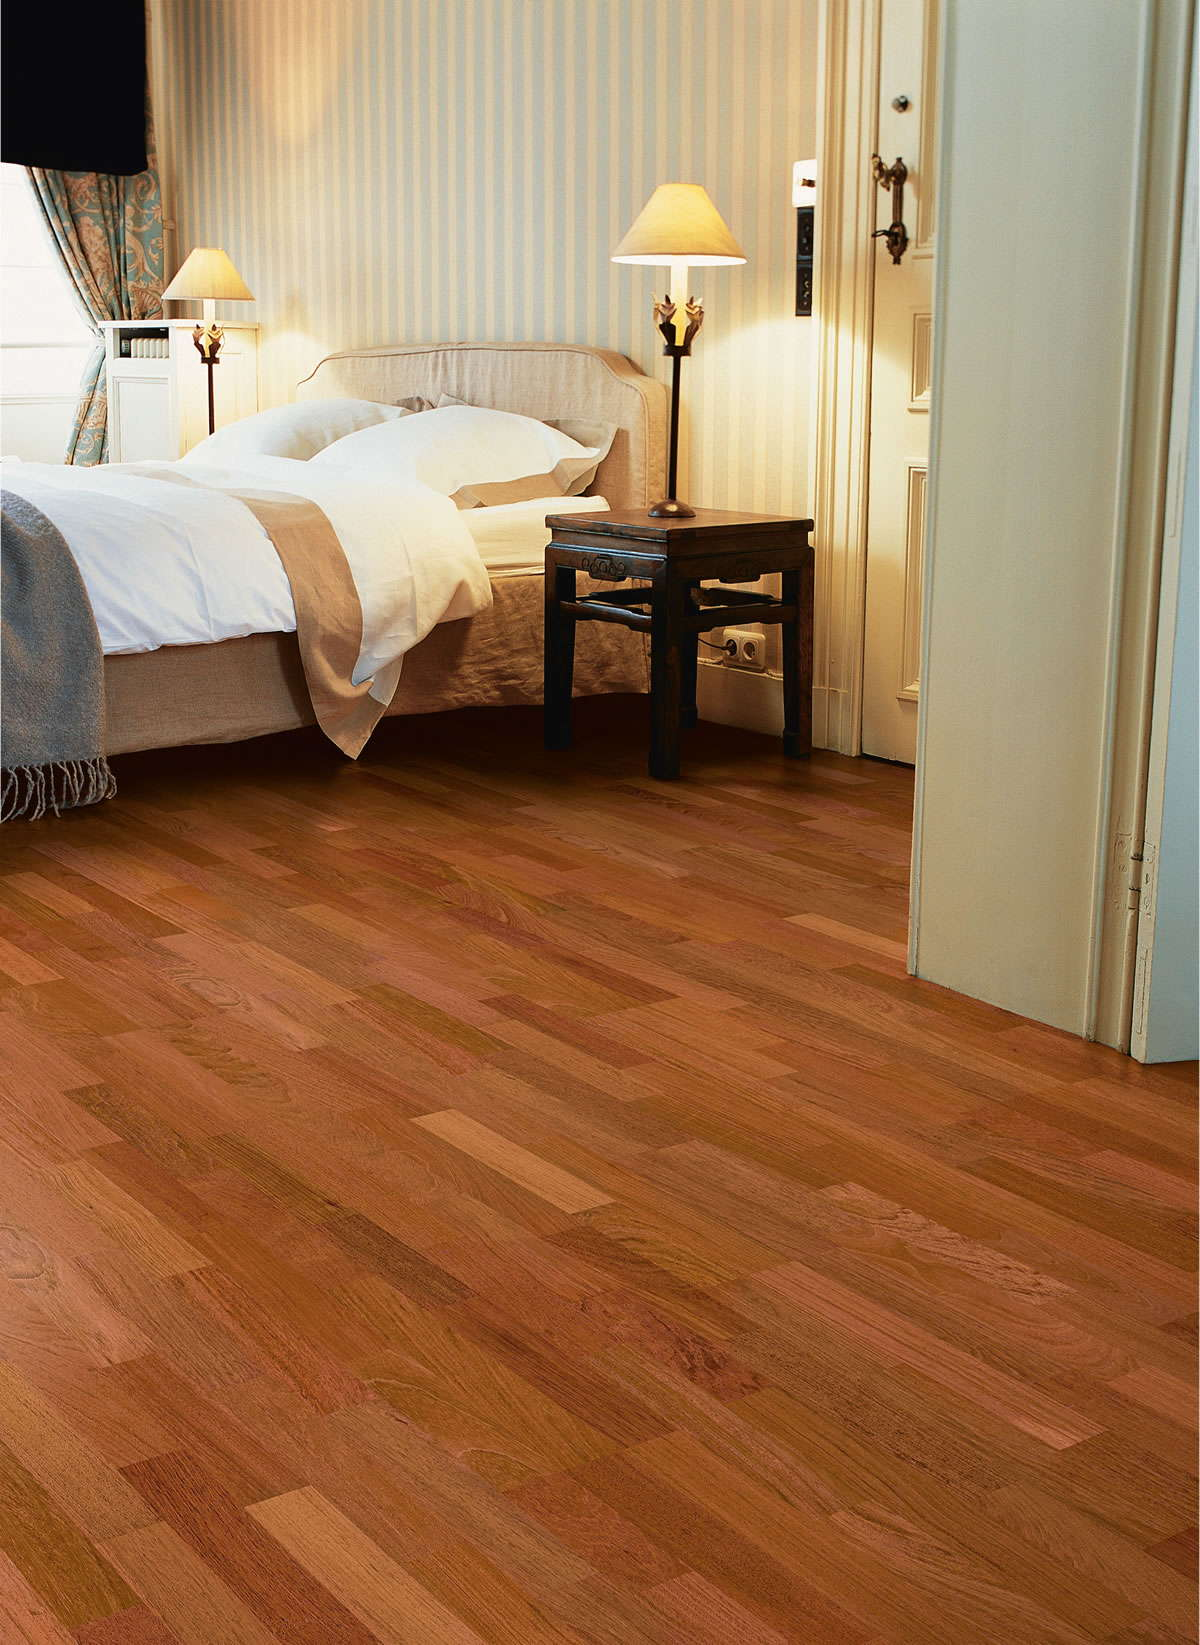 Slaapkamer Zandkleur Quickstep Villa Jatoba Satin Vil1367s Engineered Wood Flooring